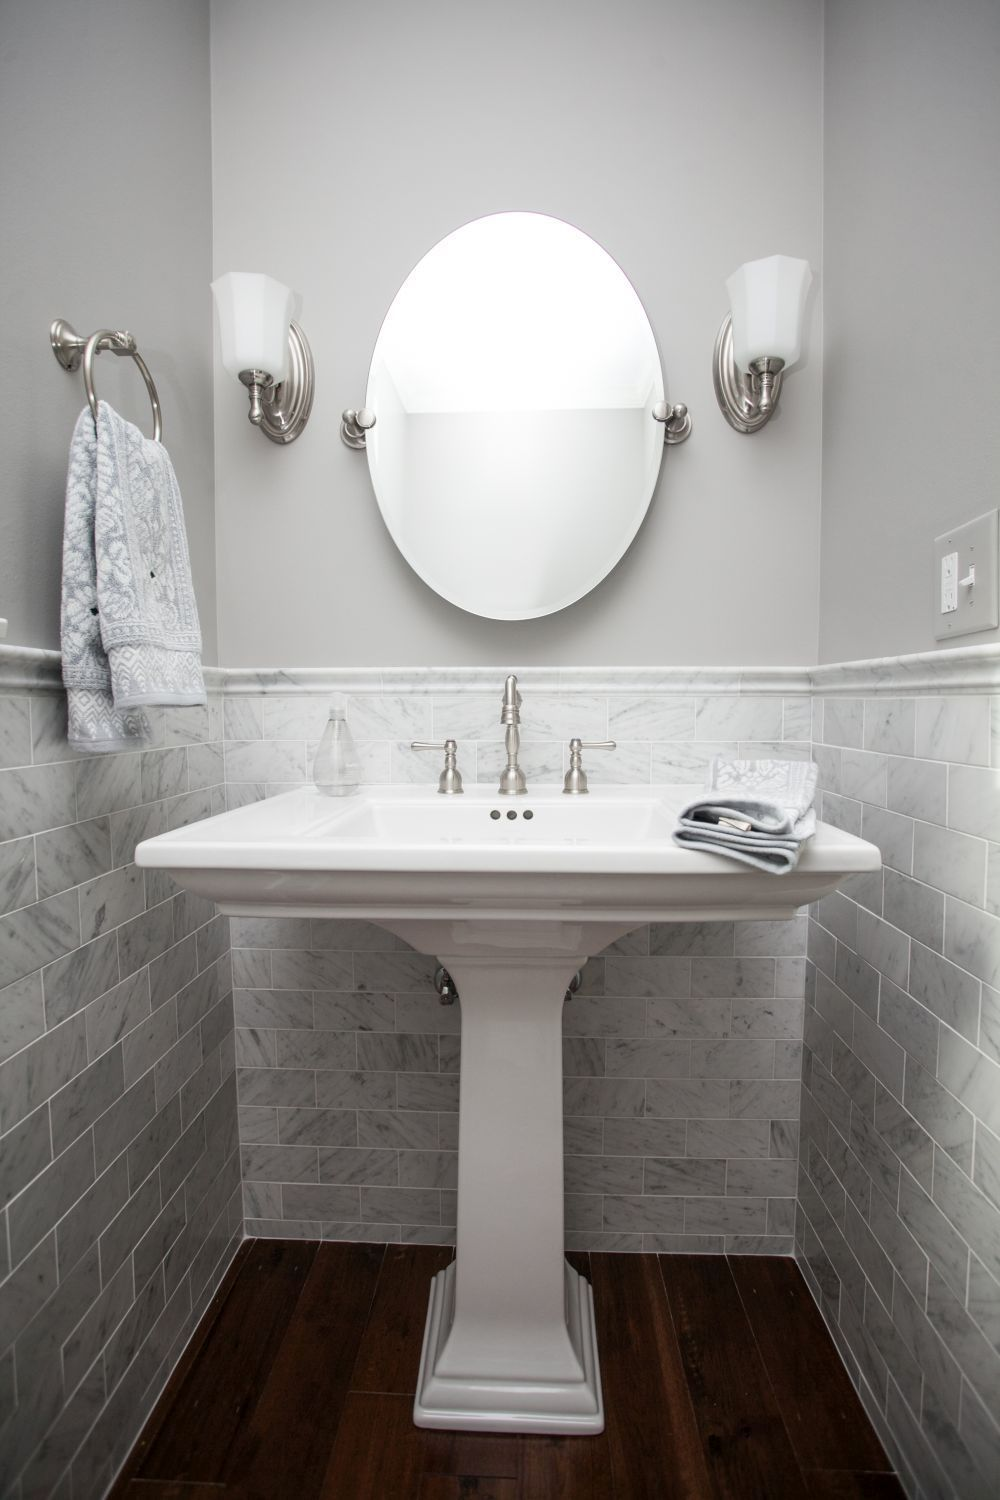 Small powder room with tile trim in 2019 powder room - Small powder room sink ...